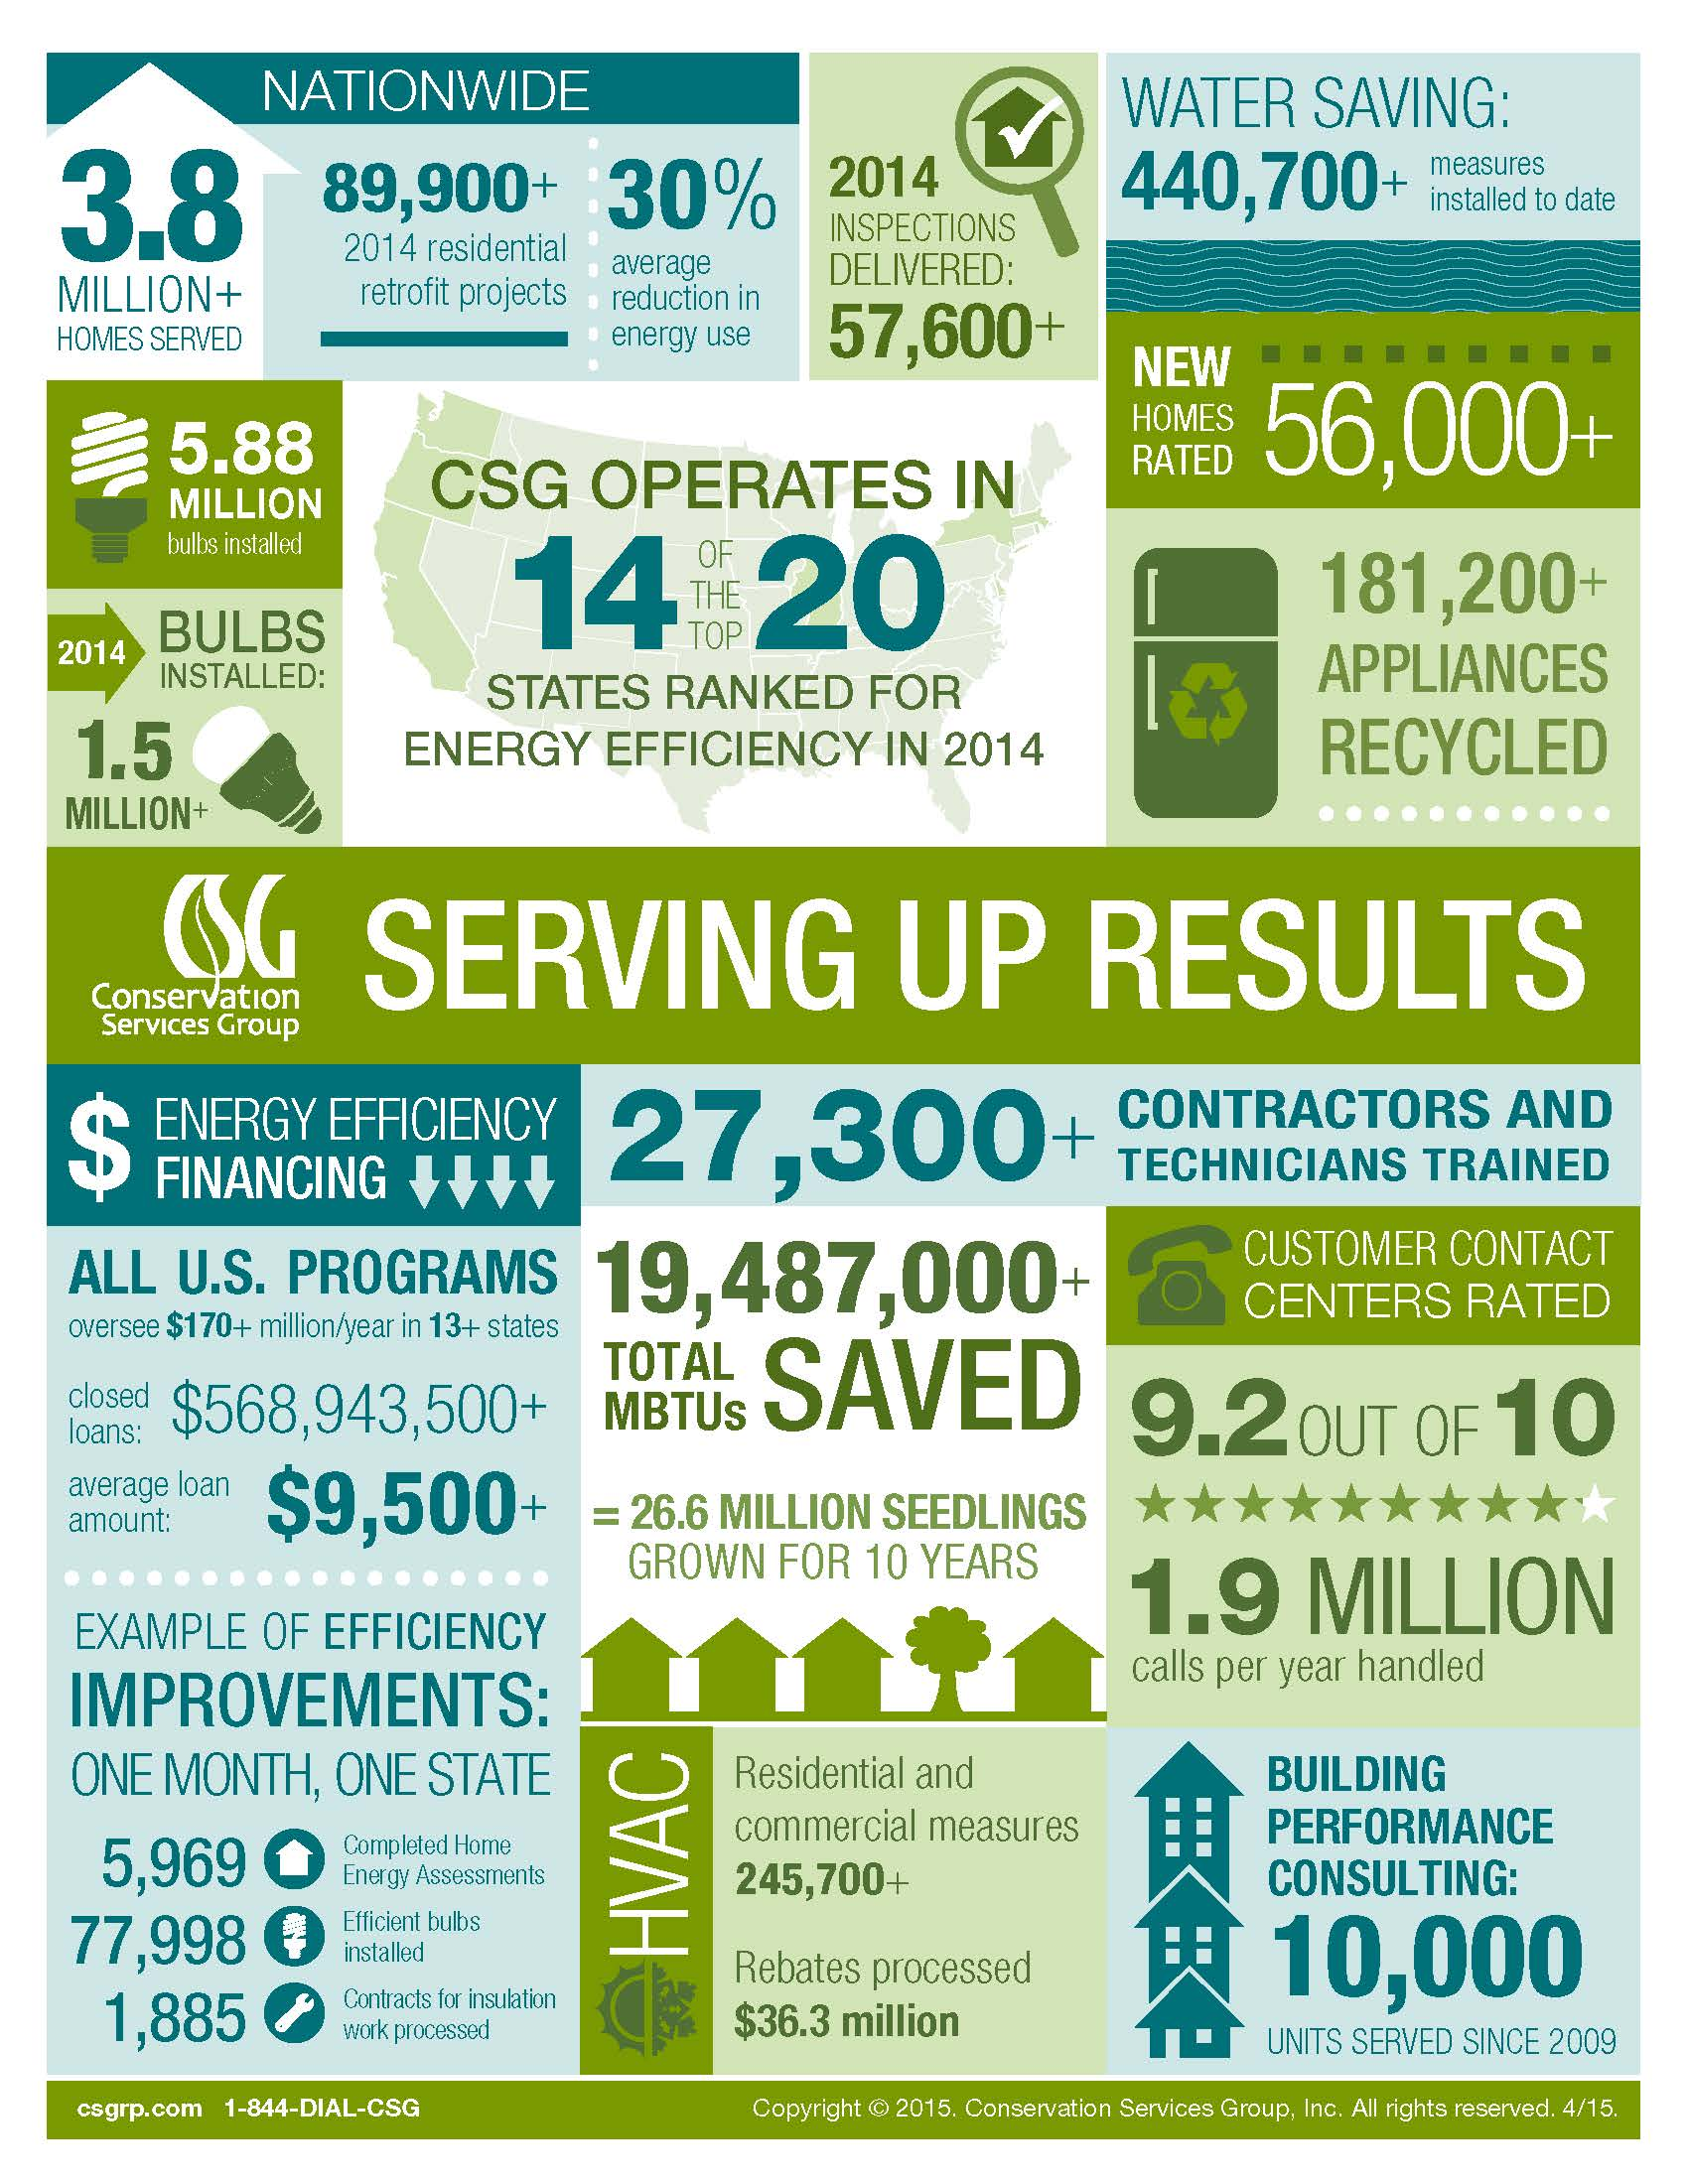 CSG By the Numbers: energy efficiency program results